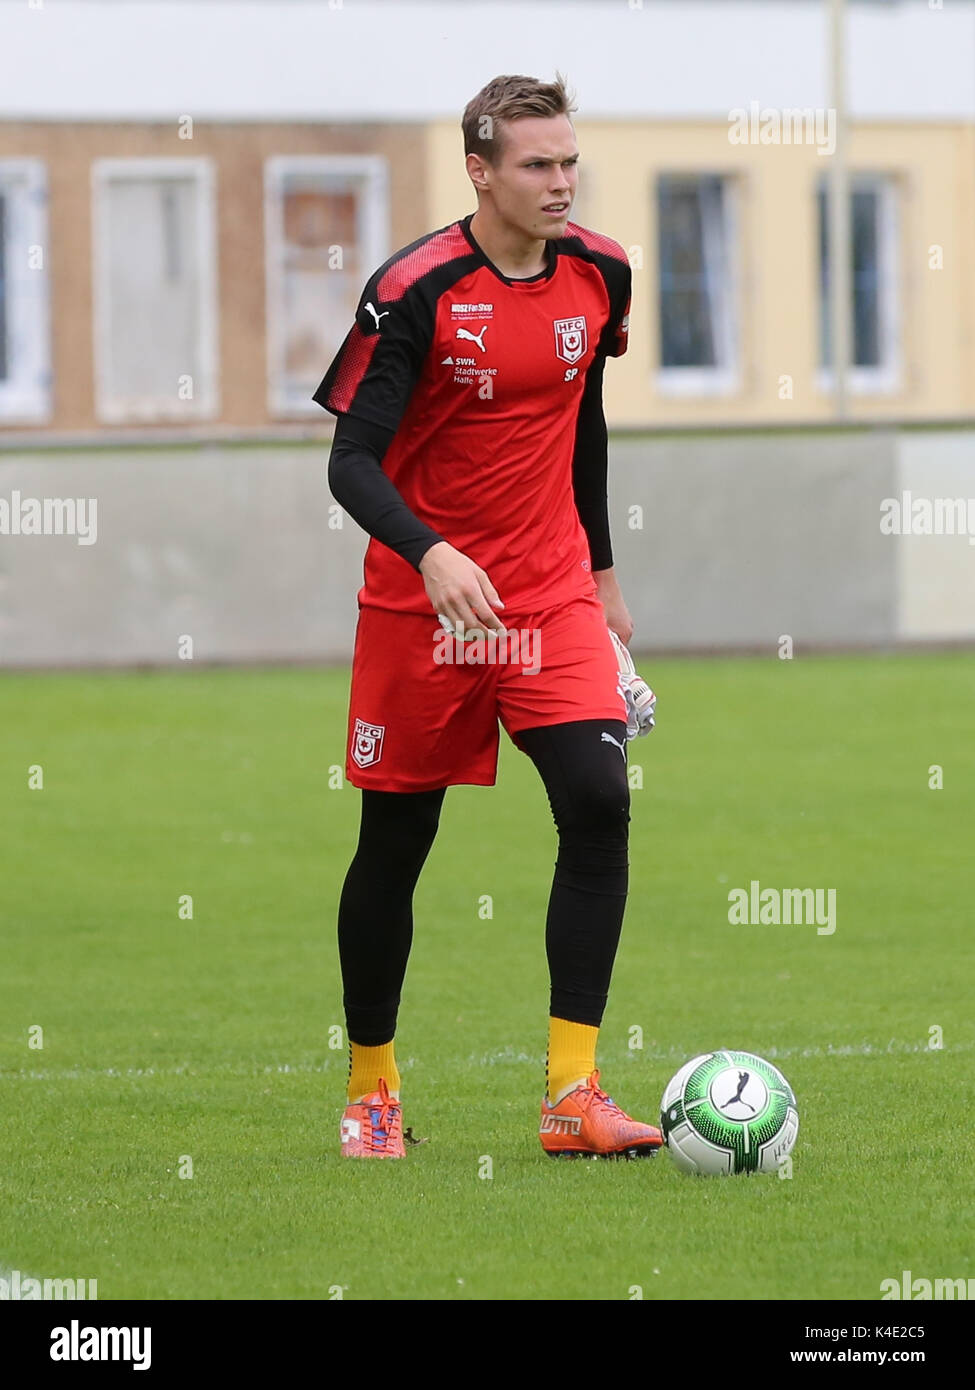 Goalkeeper Tom Müller Hallescher Fc - Stock Image